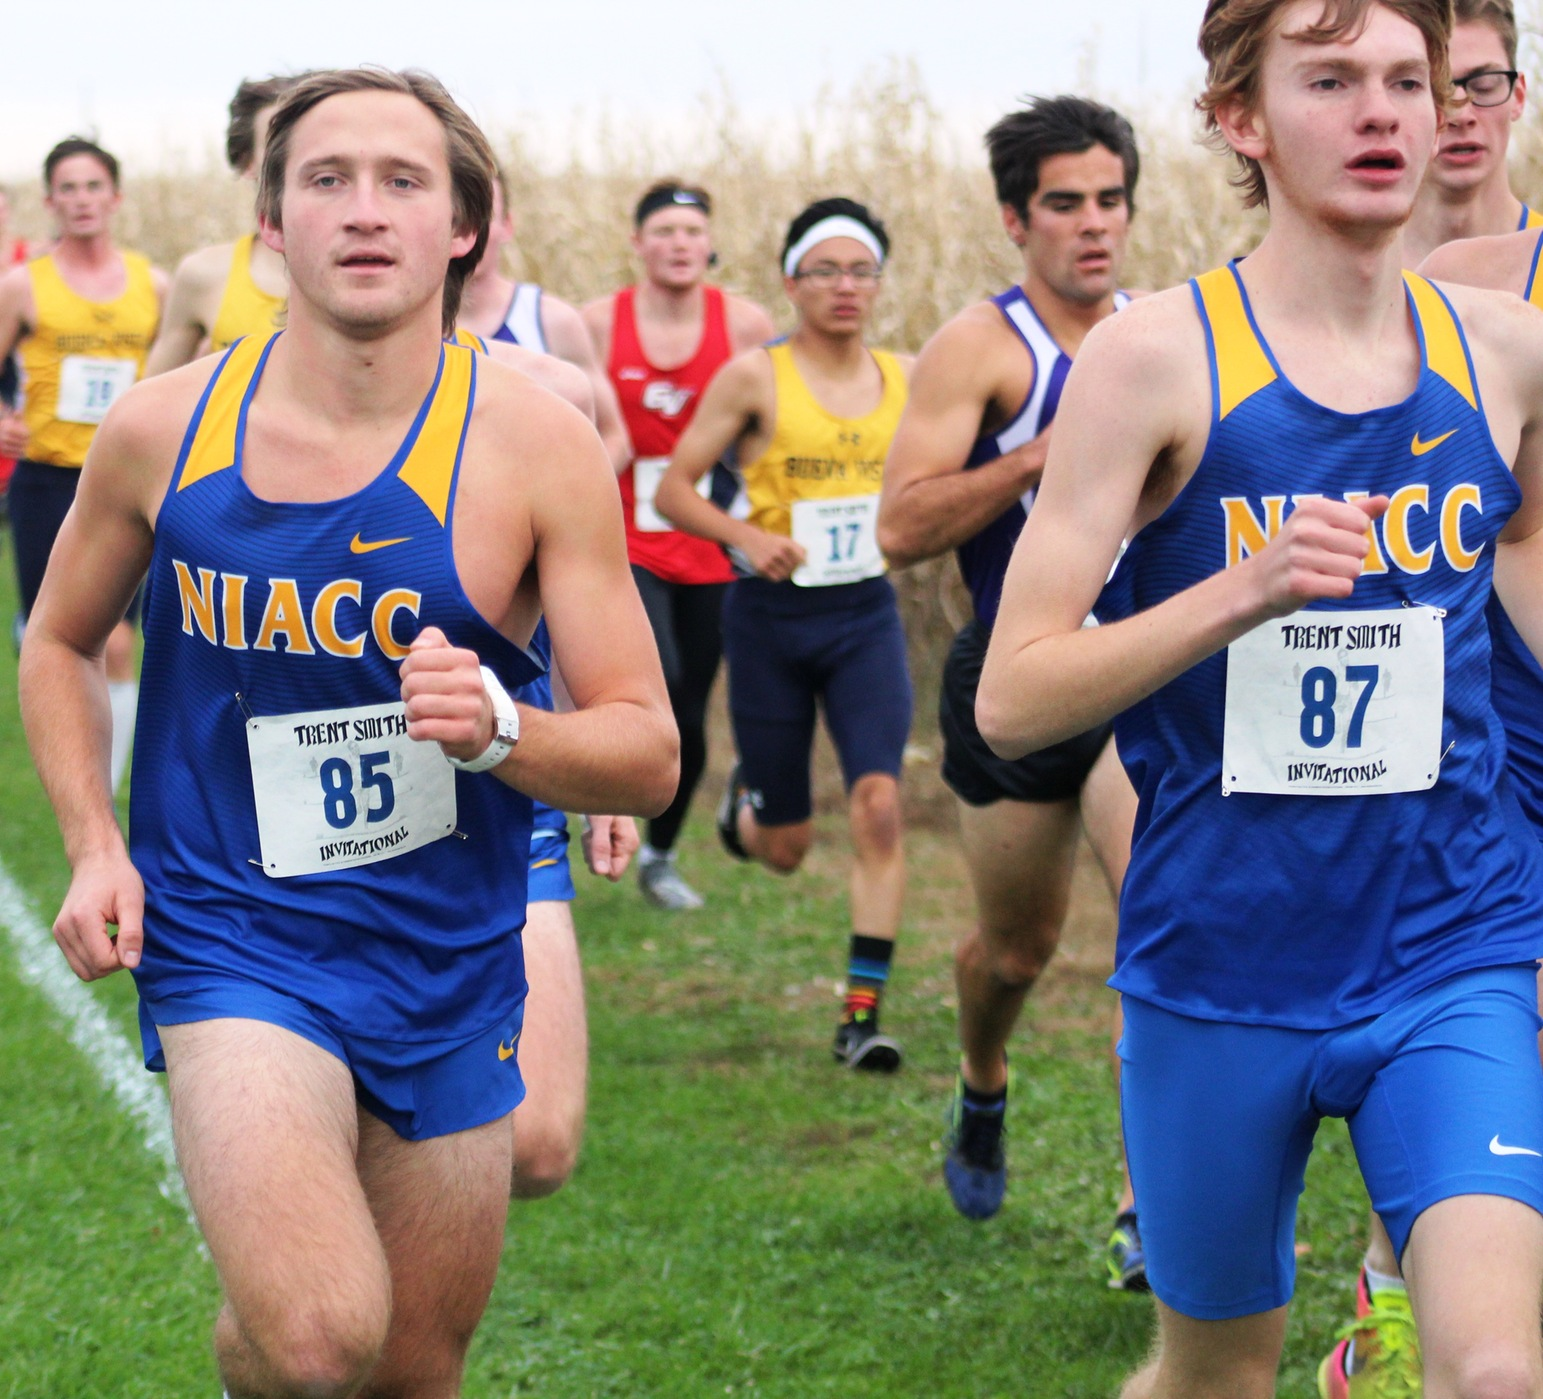 NIACC's Daniel Hennigar (left) and Sam Pedelty compete at the Trent Smith Invitational on Oct. 12 on the NIACC campus.